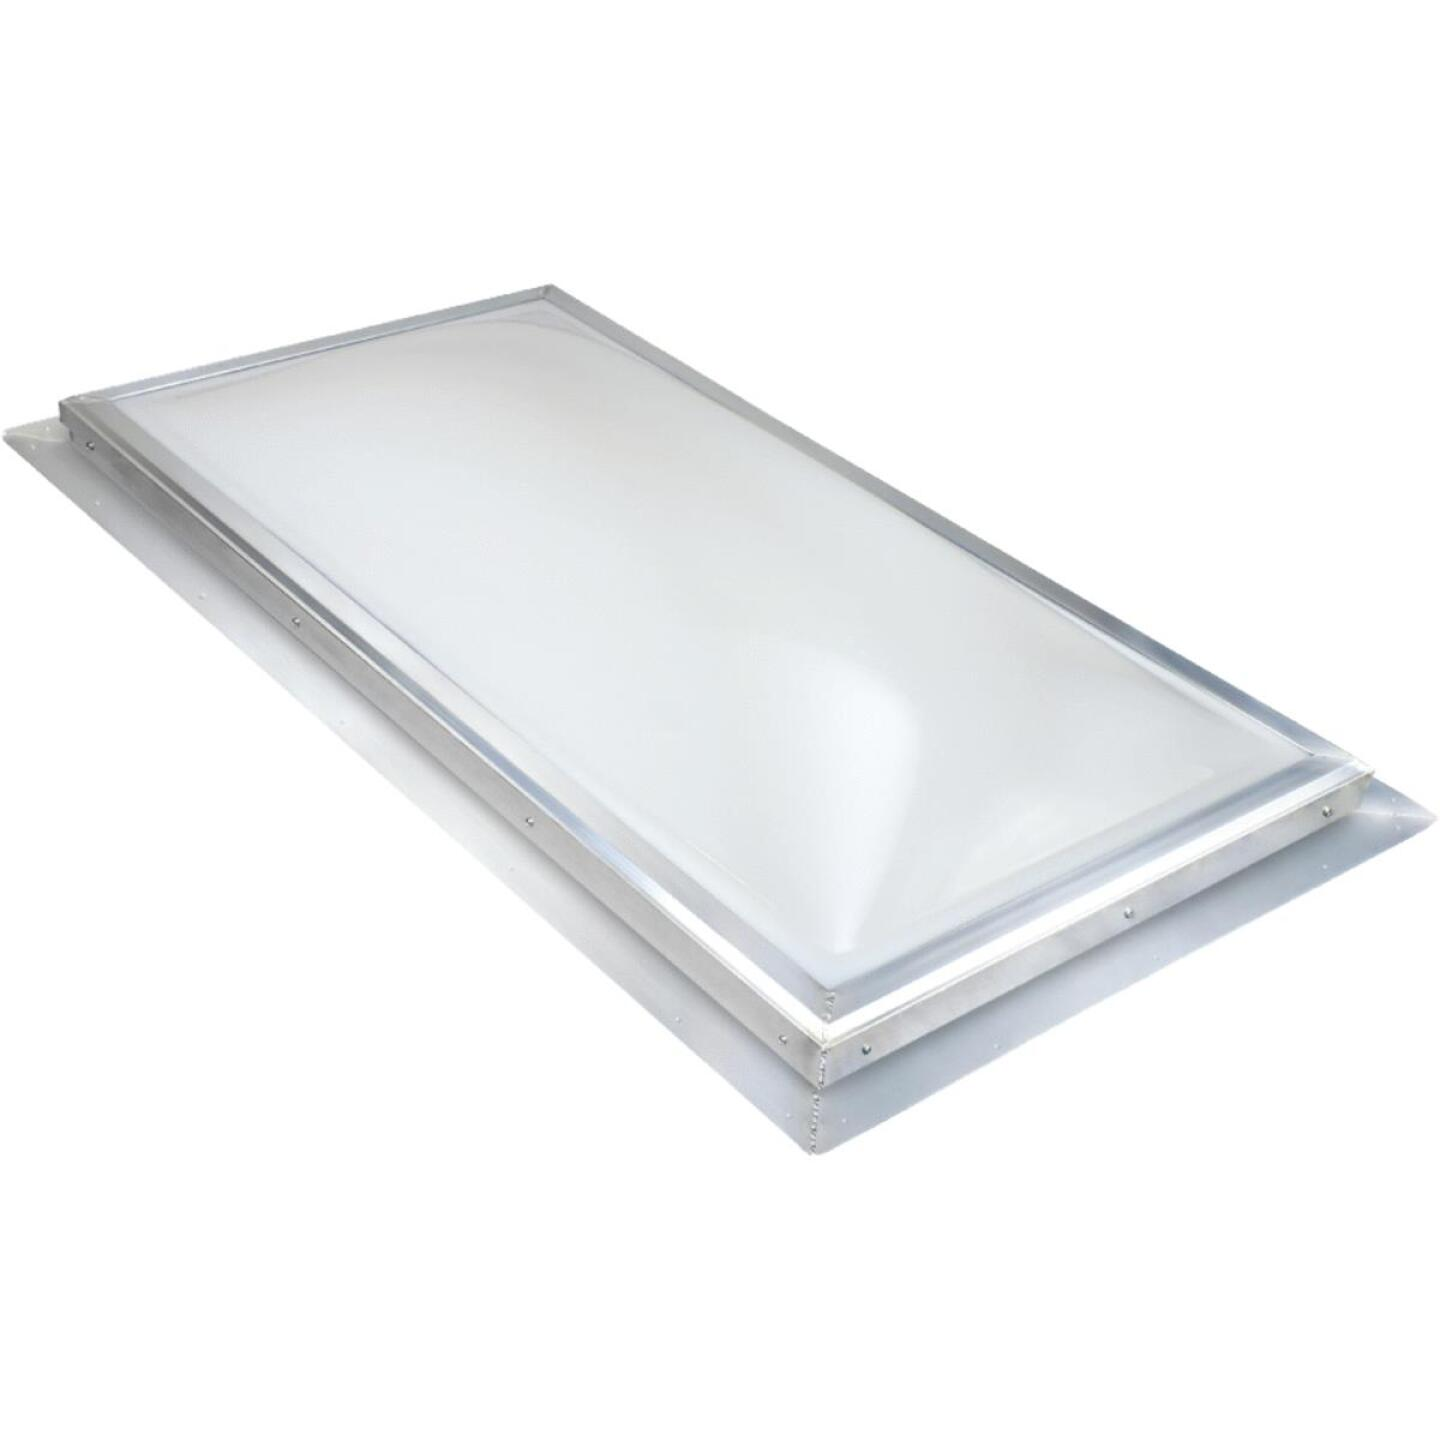 Kennedy Skylights 24 In. x 48 In. White Dome Insulated Skylight Image 1